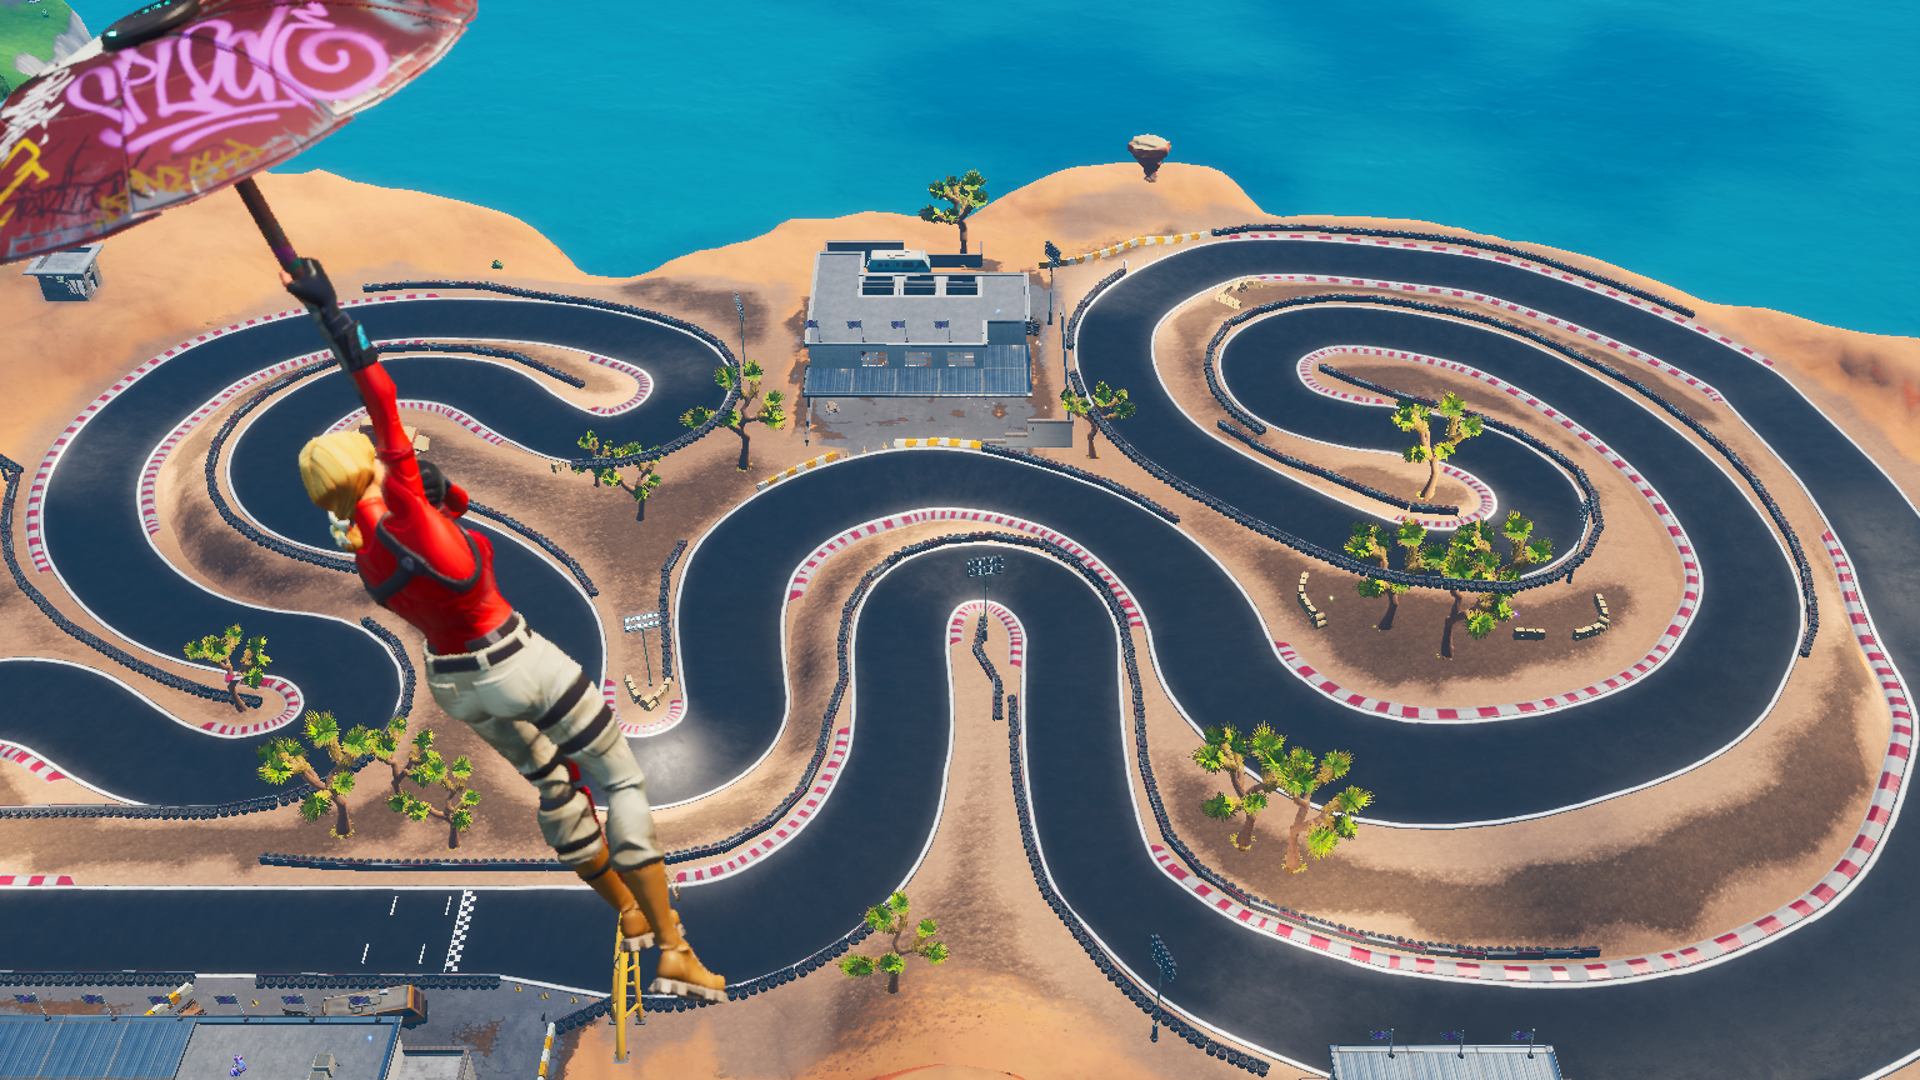 A Fortnite player glides toward a racetrack in the desert